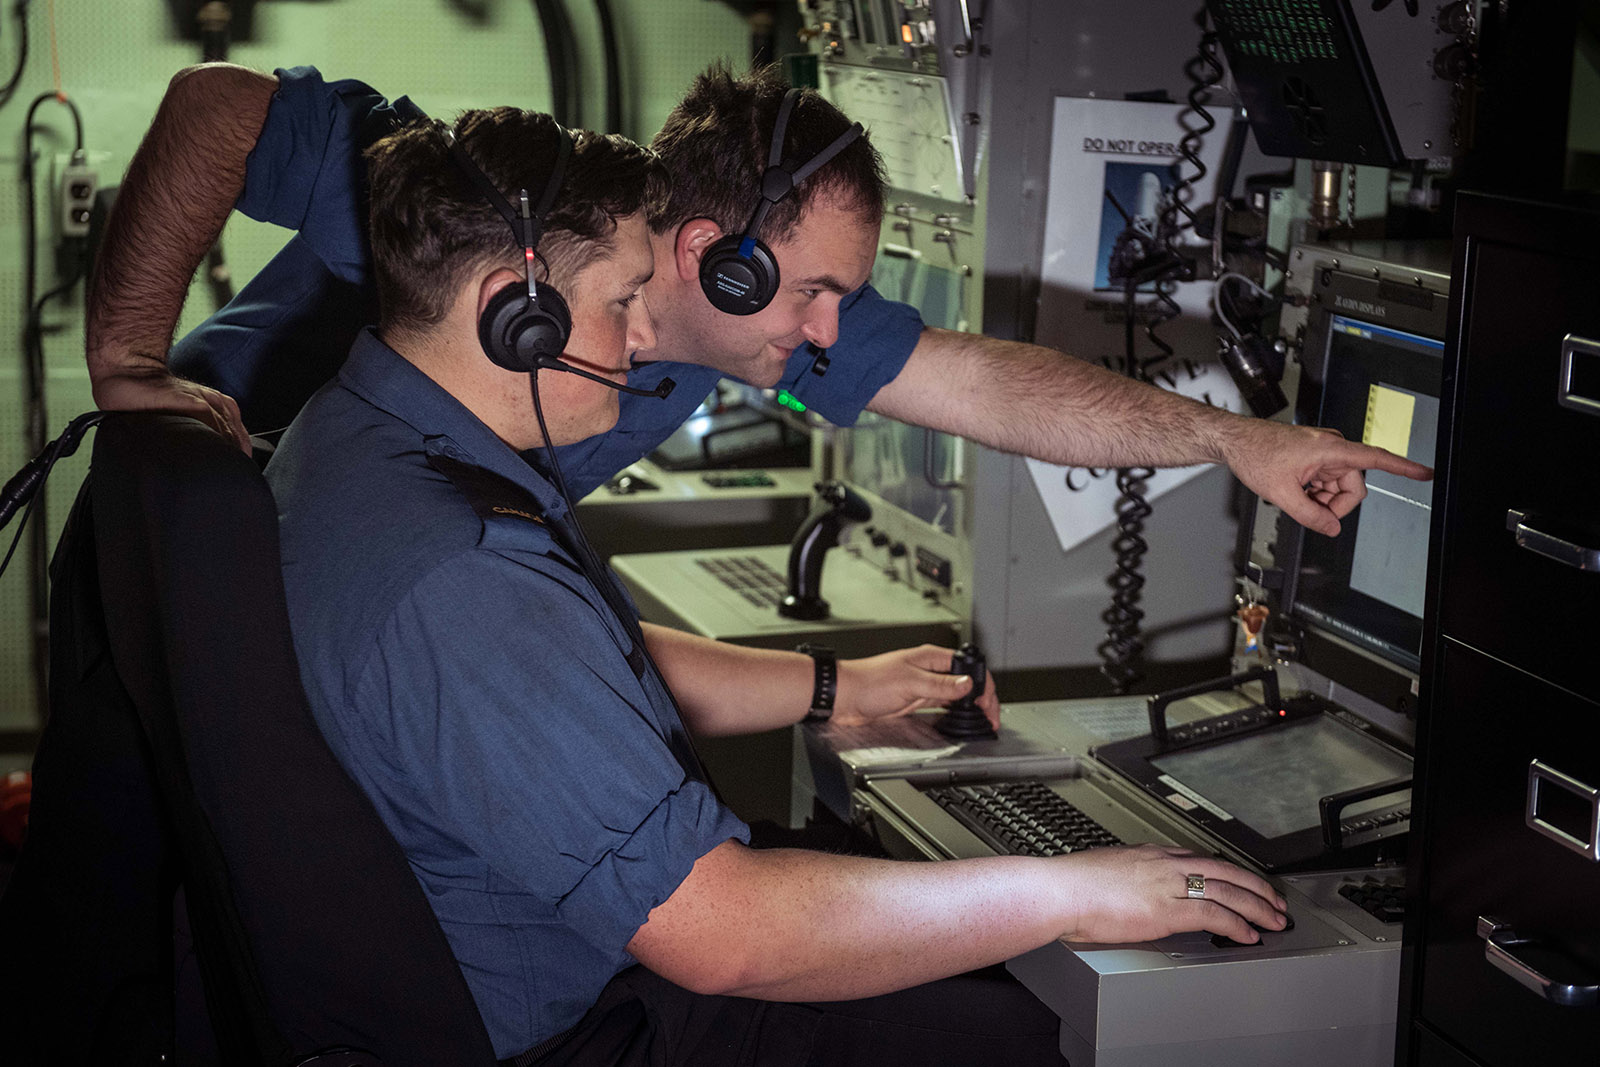 MS Firat Ataman, Forward Fire Control Supervisor mentors OS Walker Grant as he becomes familiar with the Forward Fire Control Radar Console onboard HMCS OTTAWA during Operation PROJECTION.